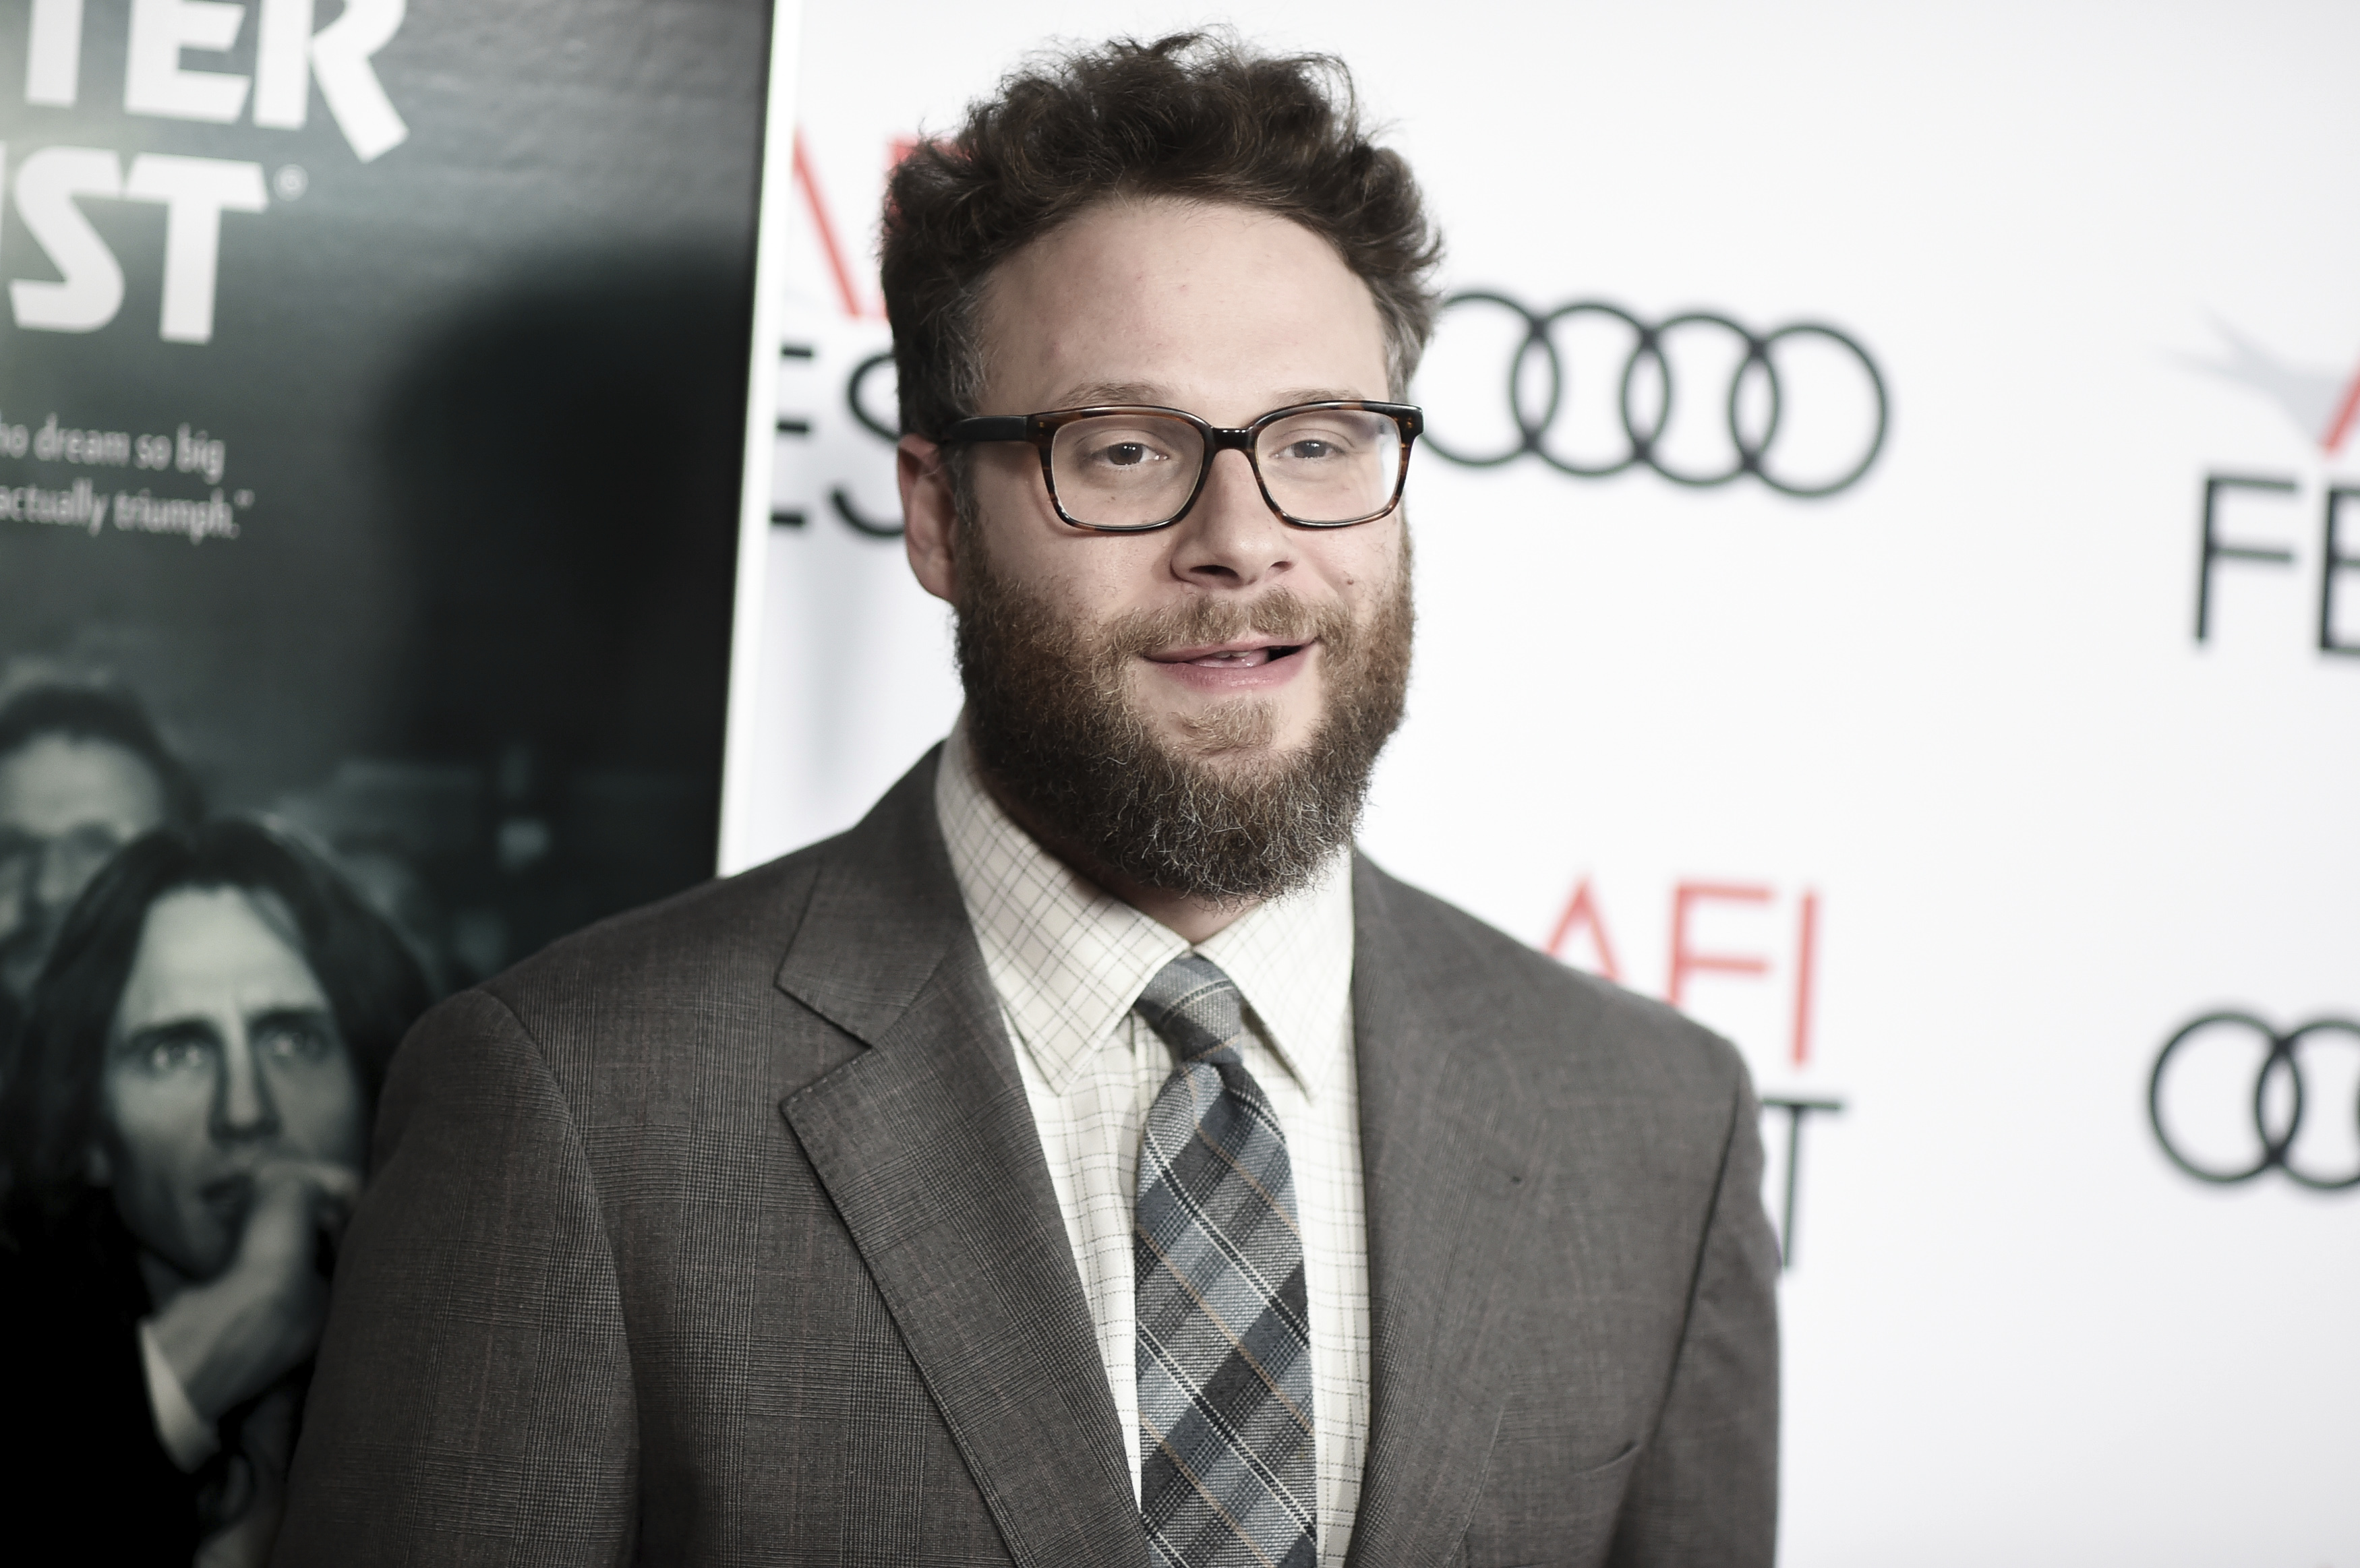 Seth Rogen cancels Sirius XM interviews in protest of Breitbart's Steve Bannon getting his own show